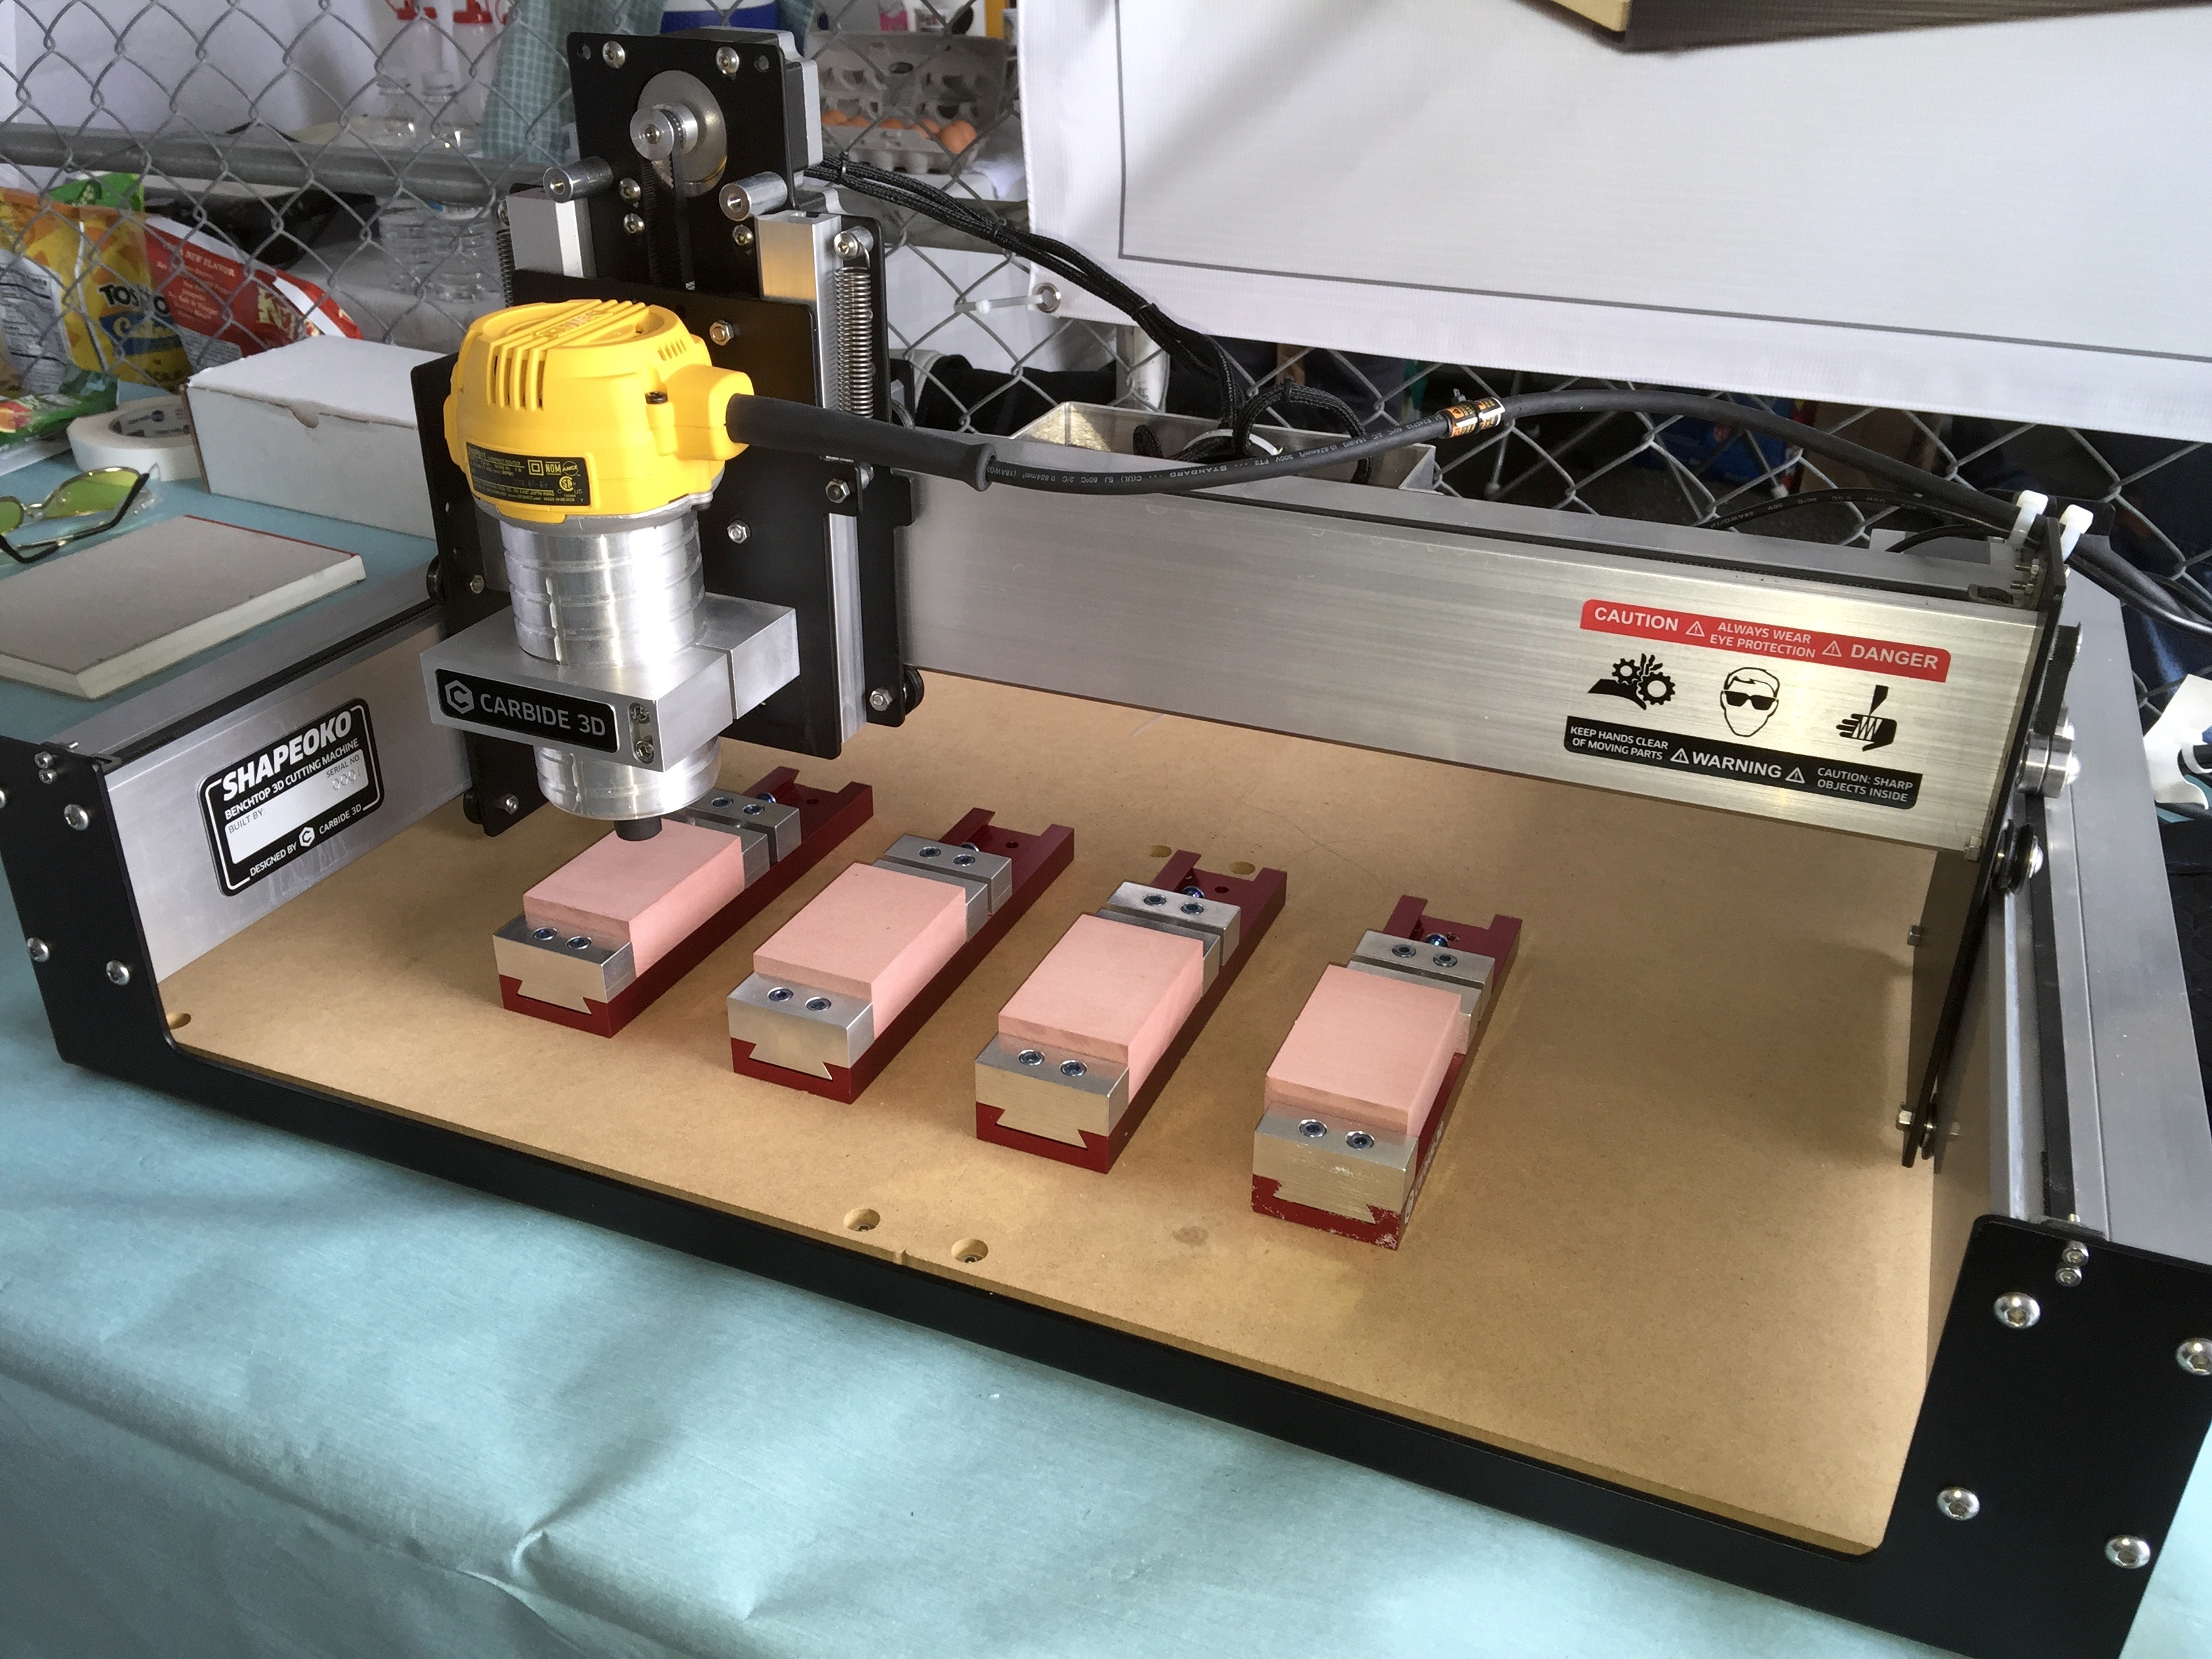 Shapeoko's Steady March Toward a Better, Affordable CNC